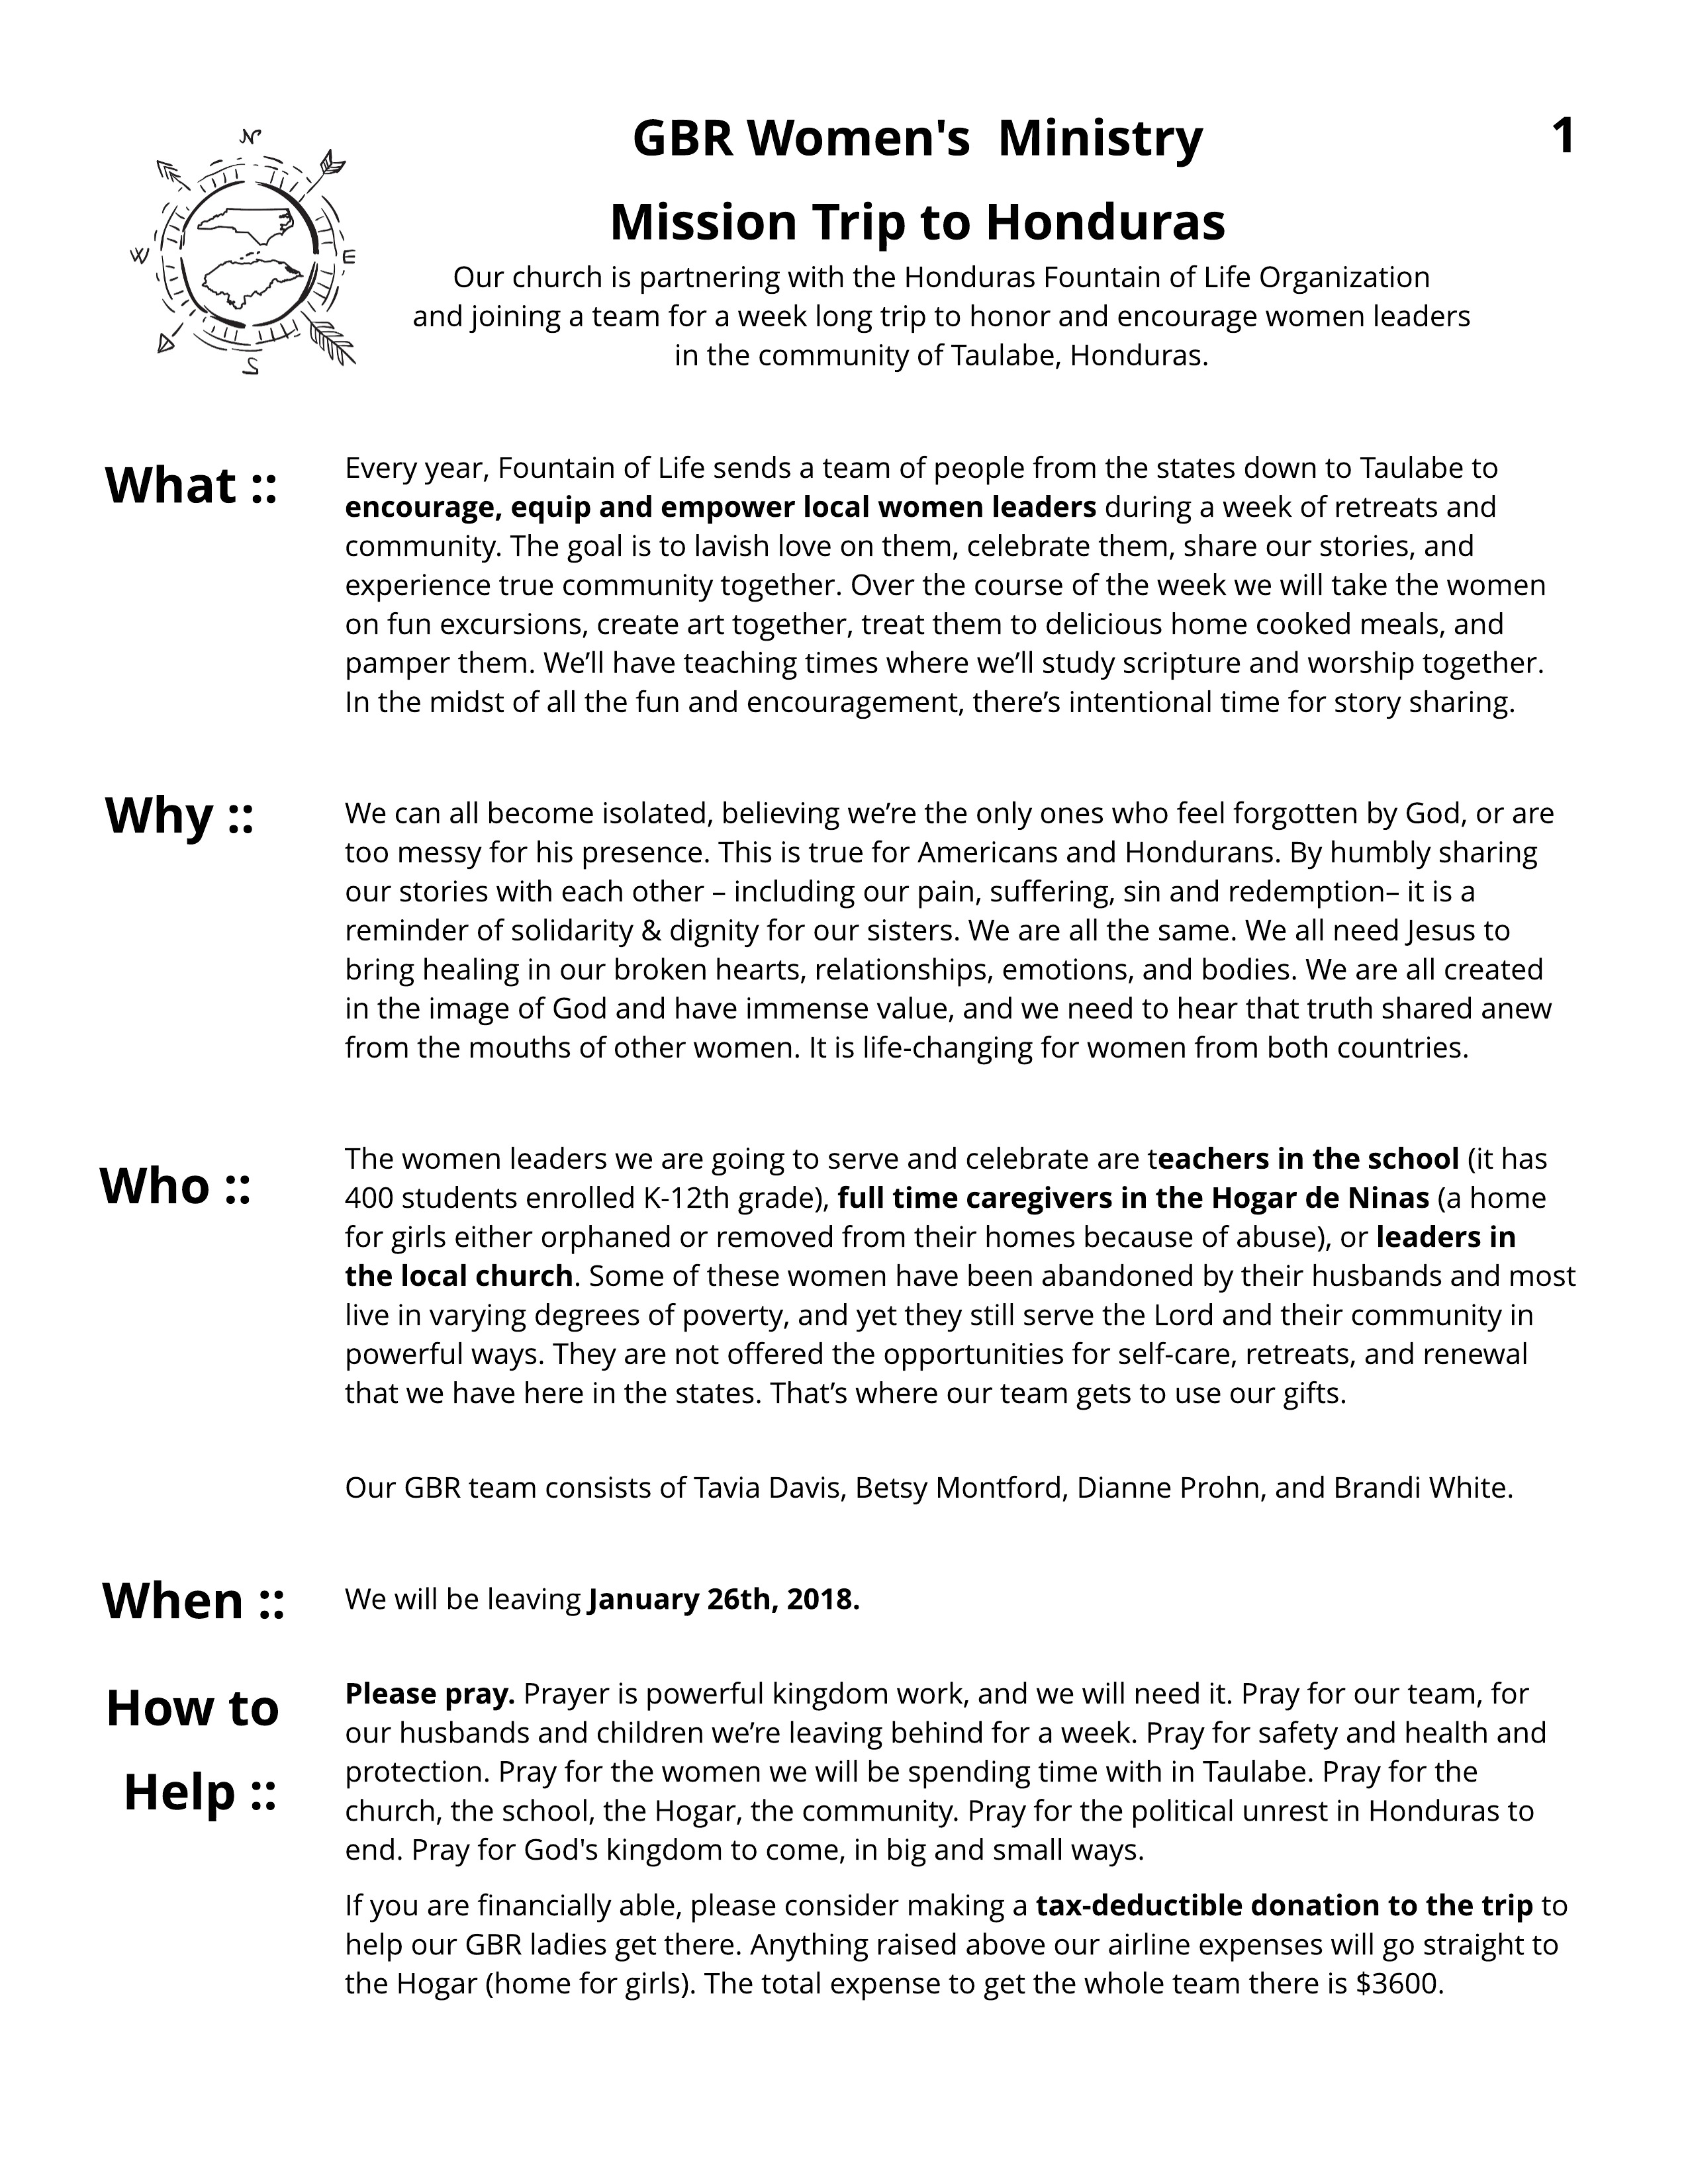 Honduras GBR Handout - Untitled Page